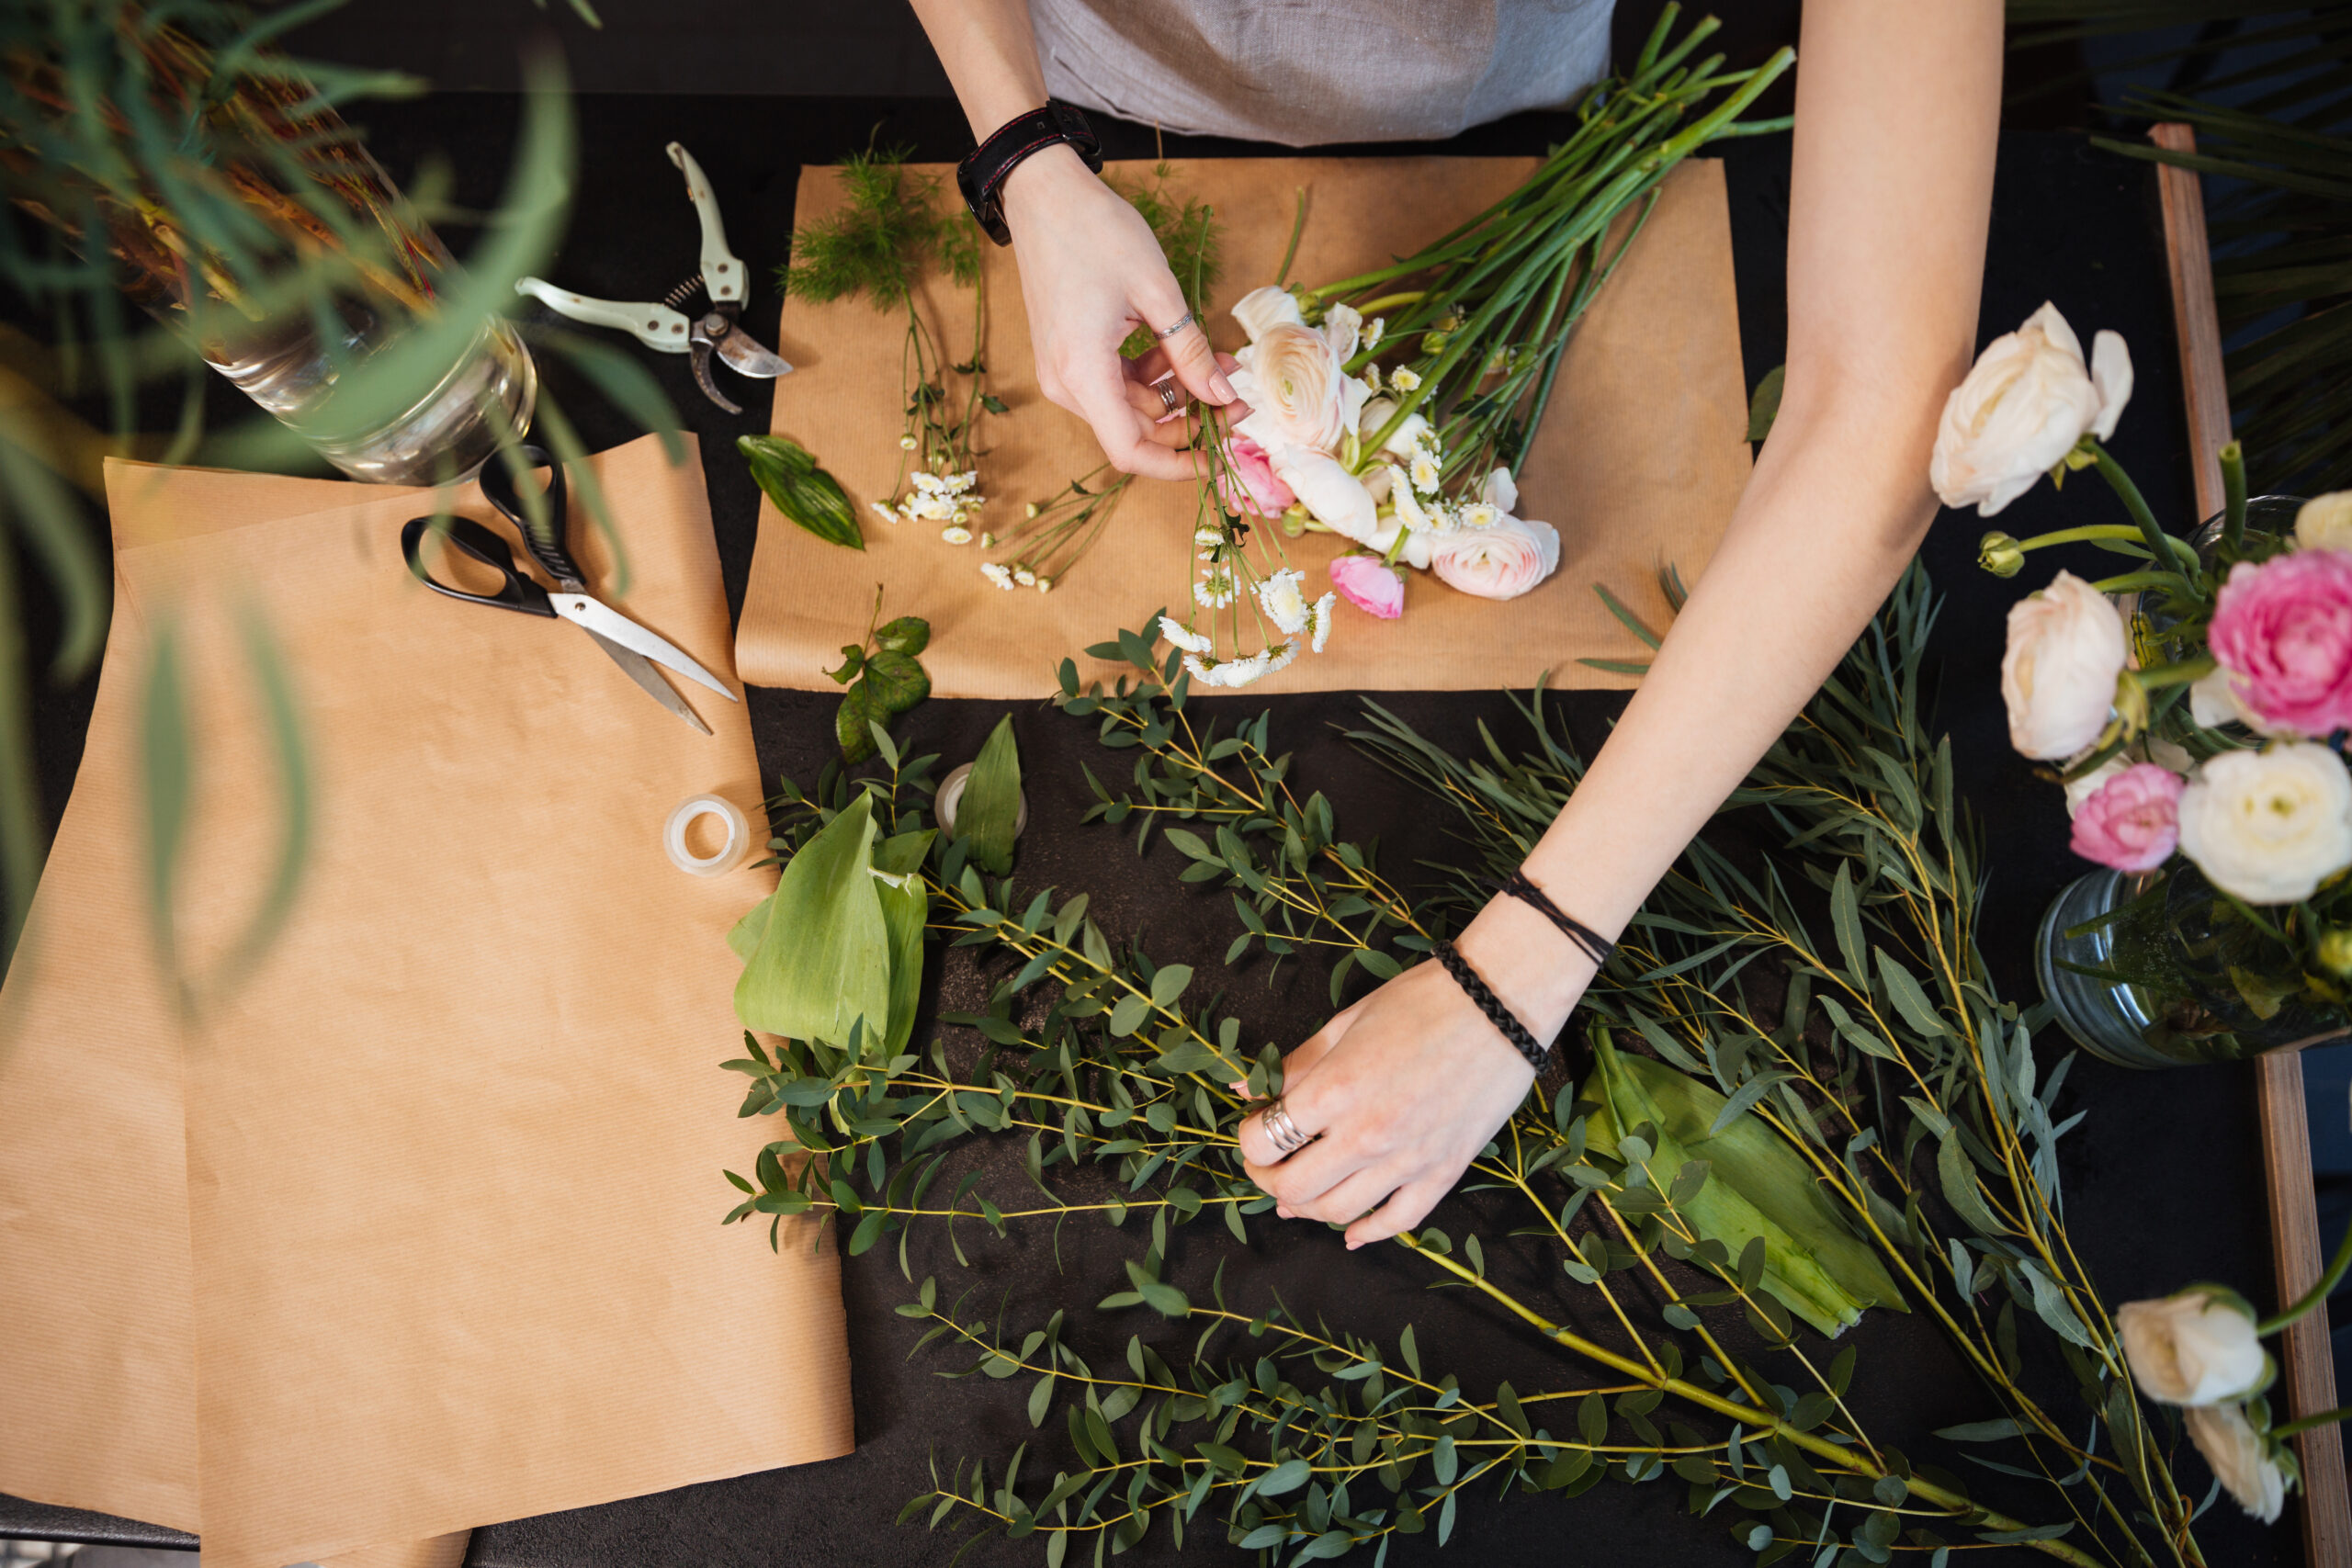 creating bouquet course